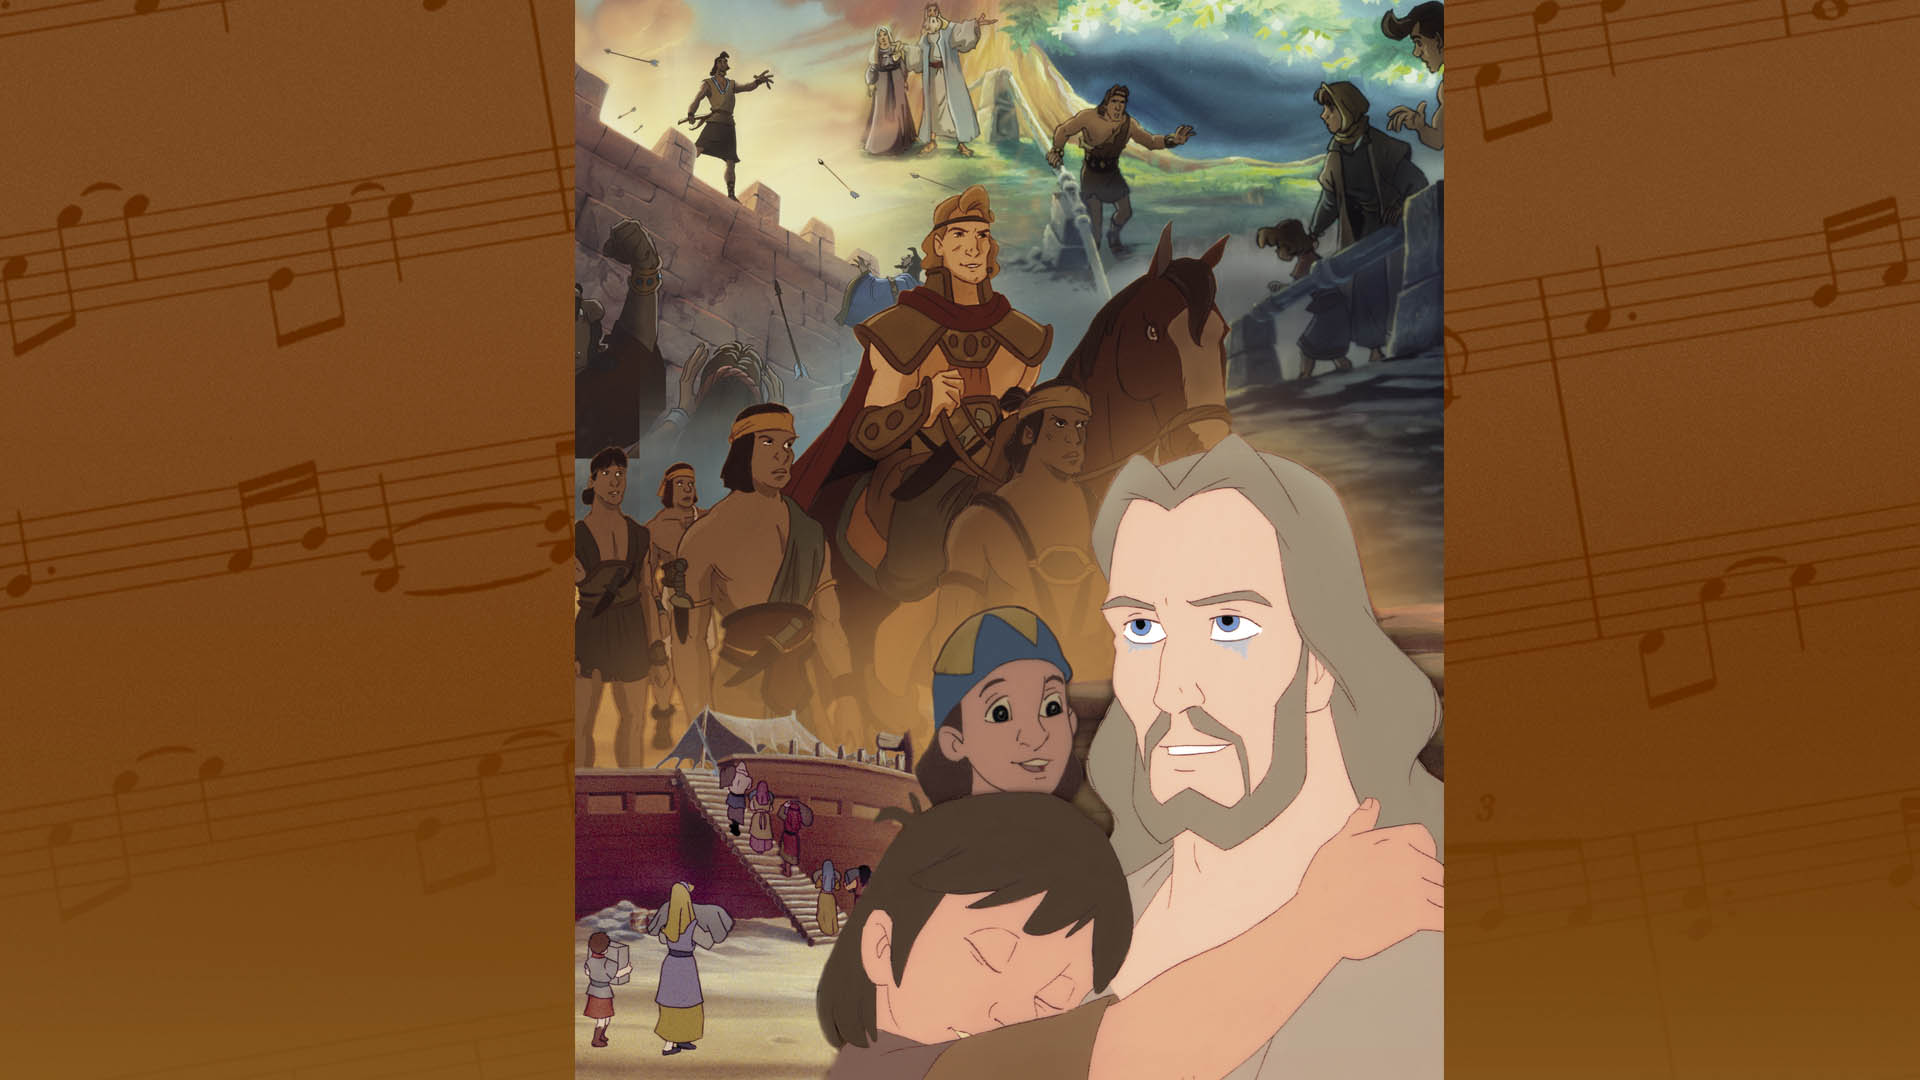 Songs from The Animated Book of Mormon